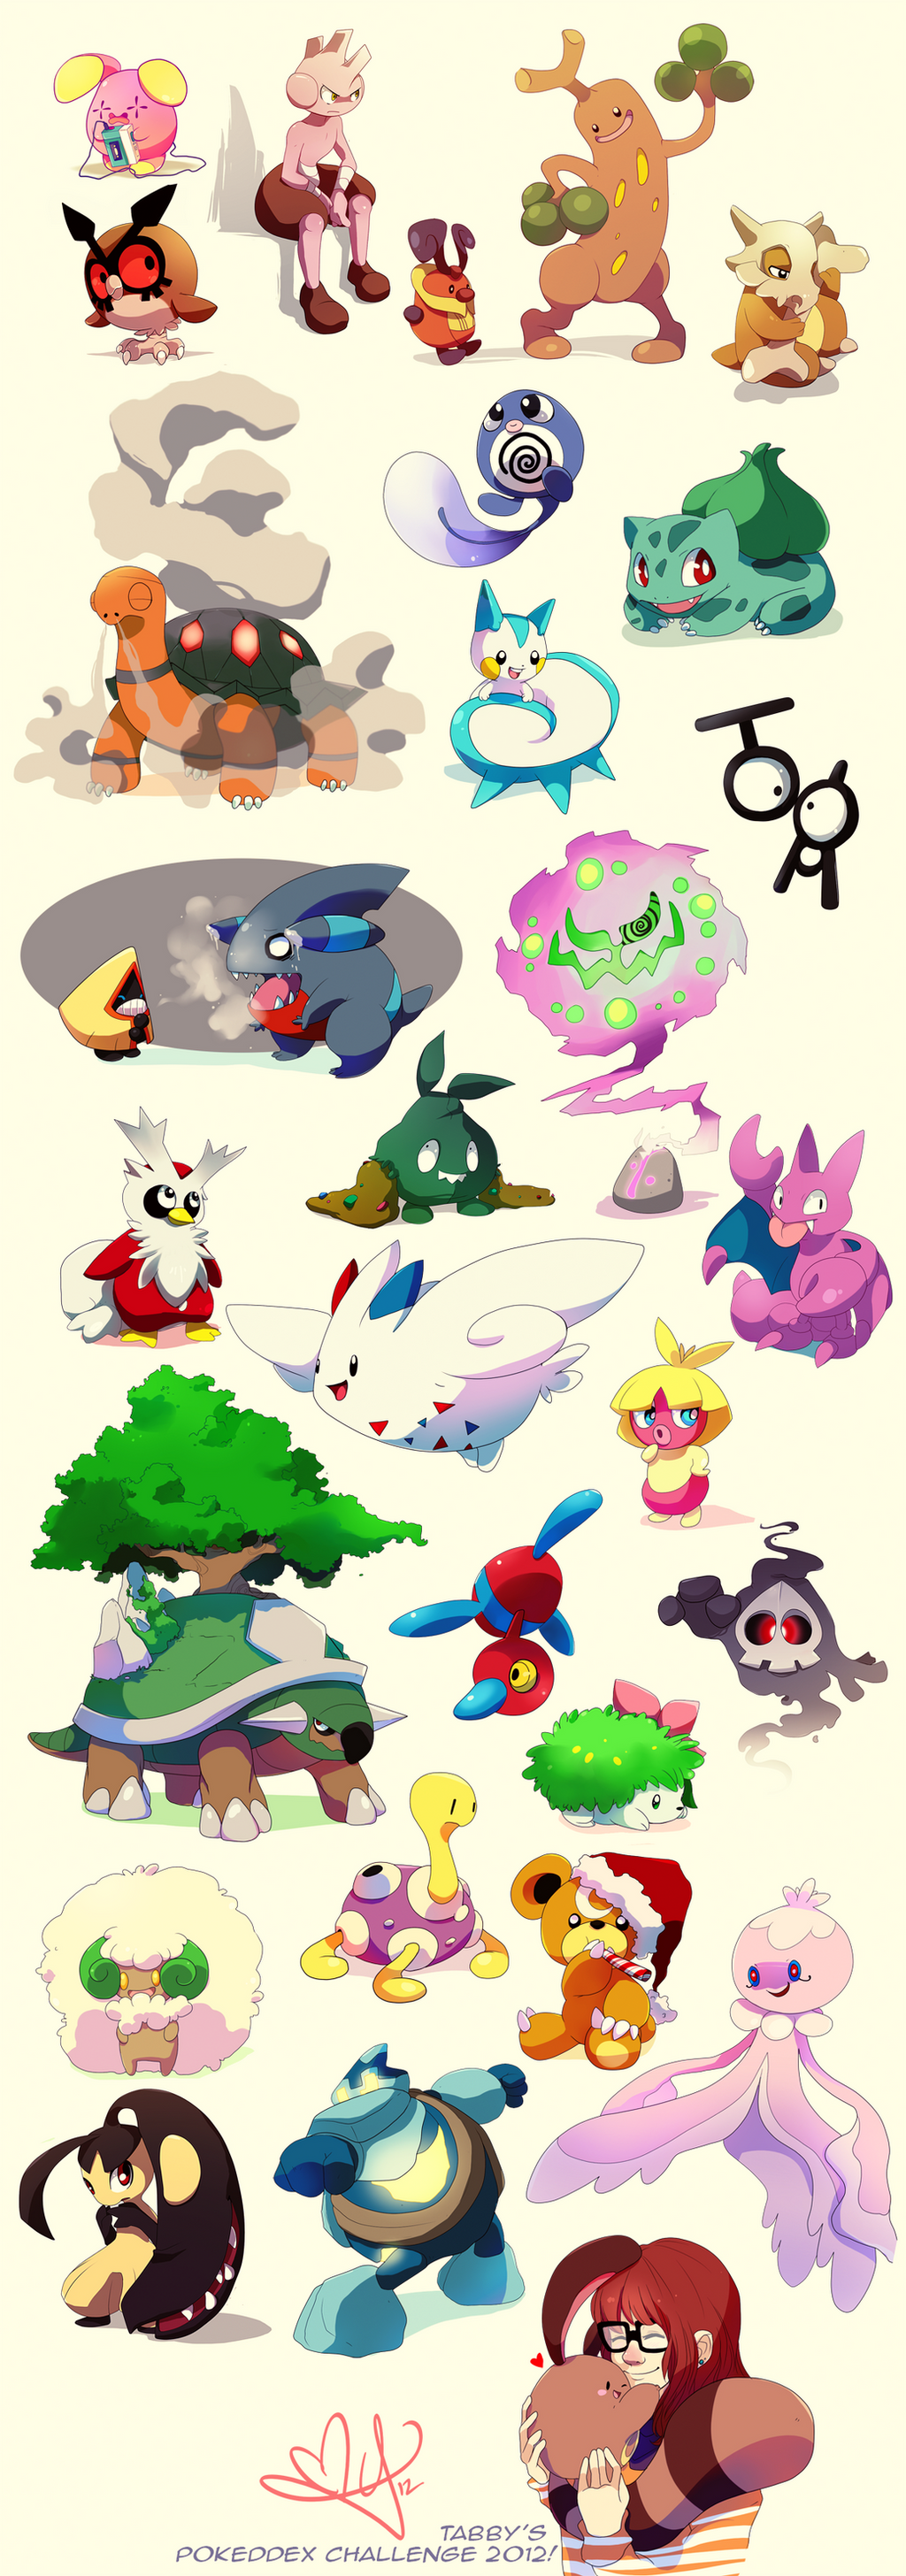 Pokeddex Challenge 2012 by tabby-like-a-cat